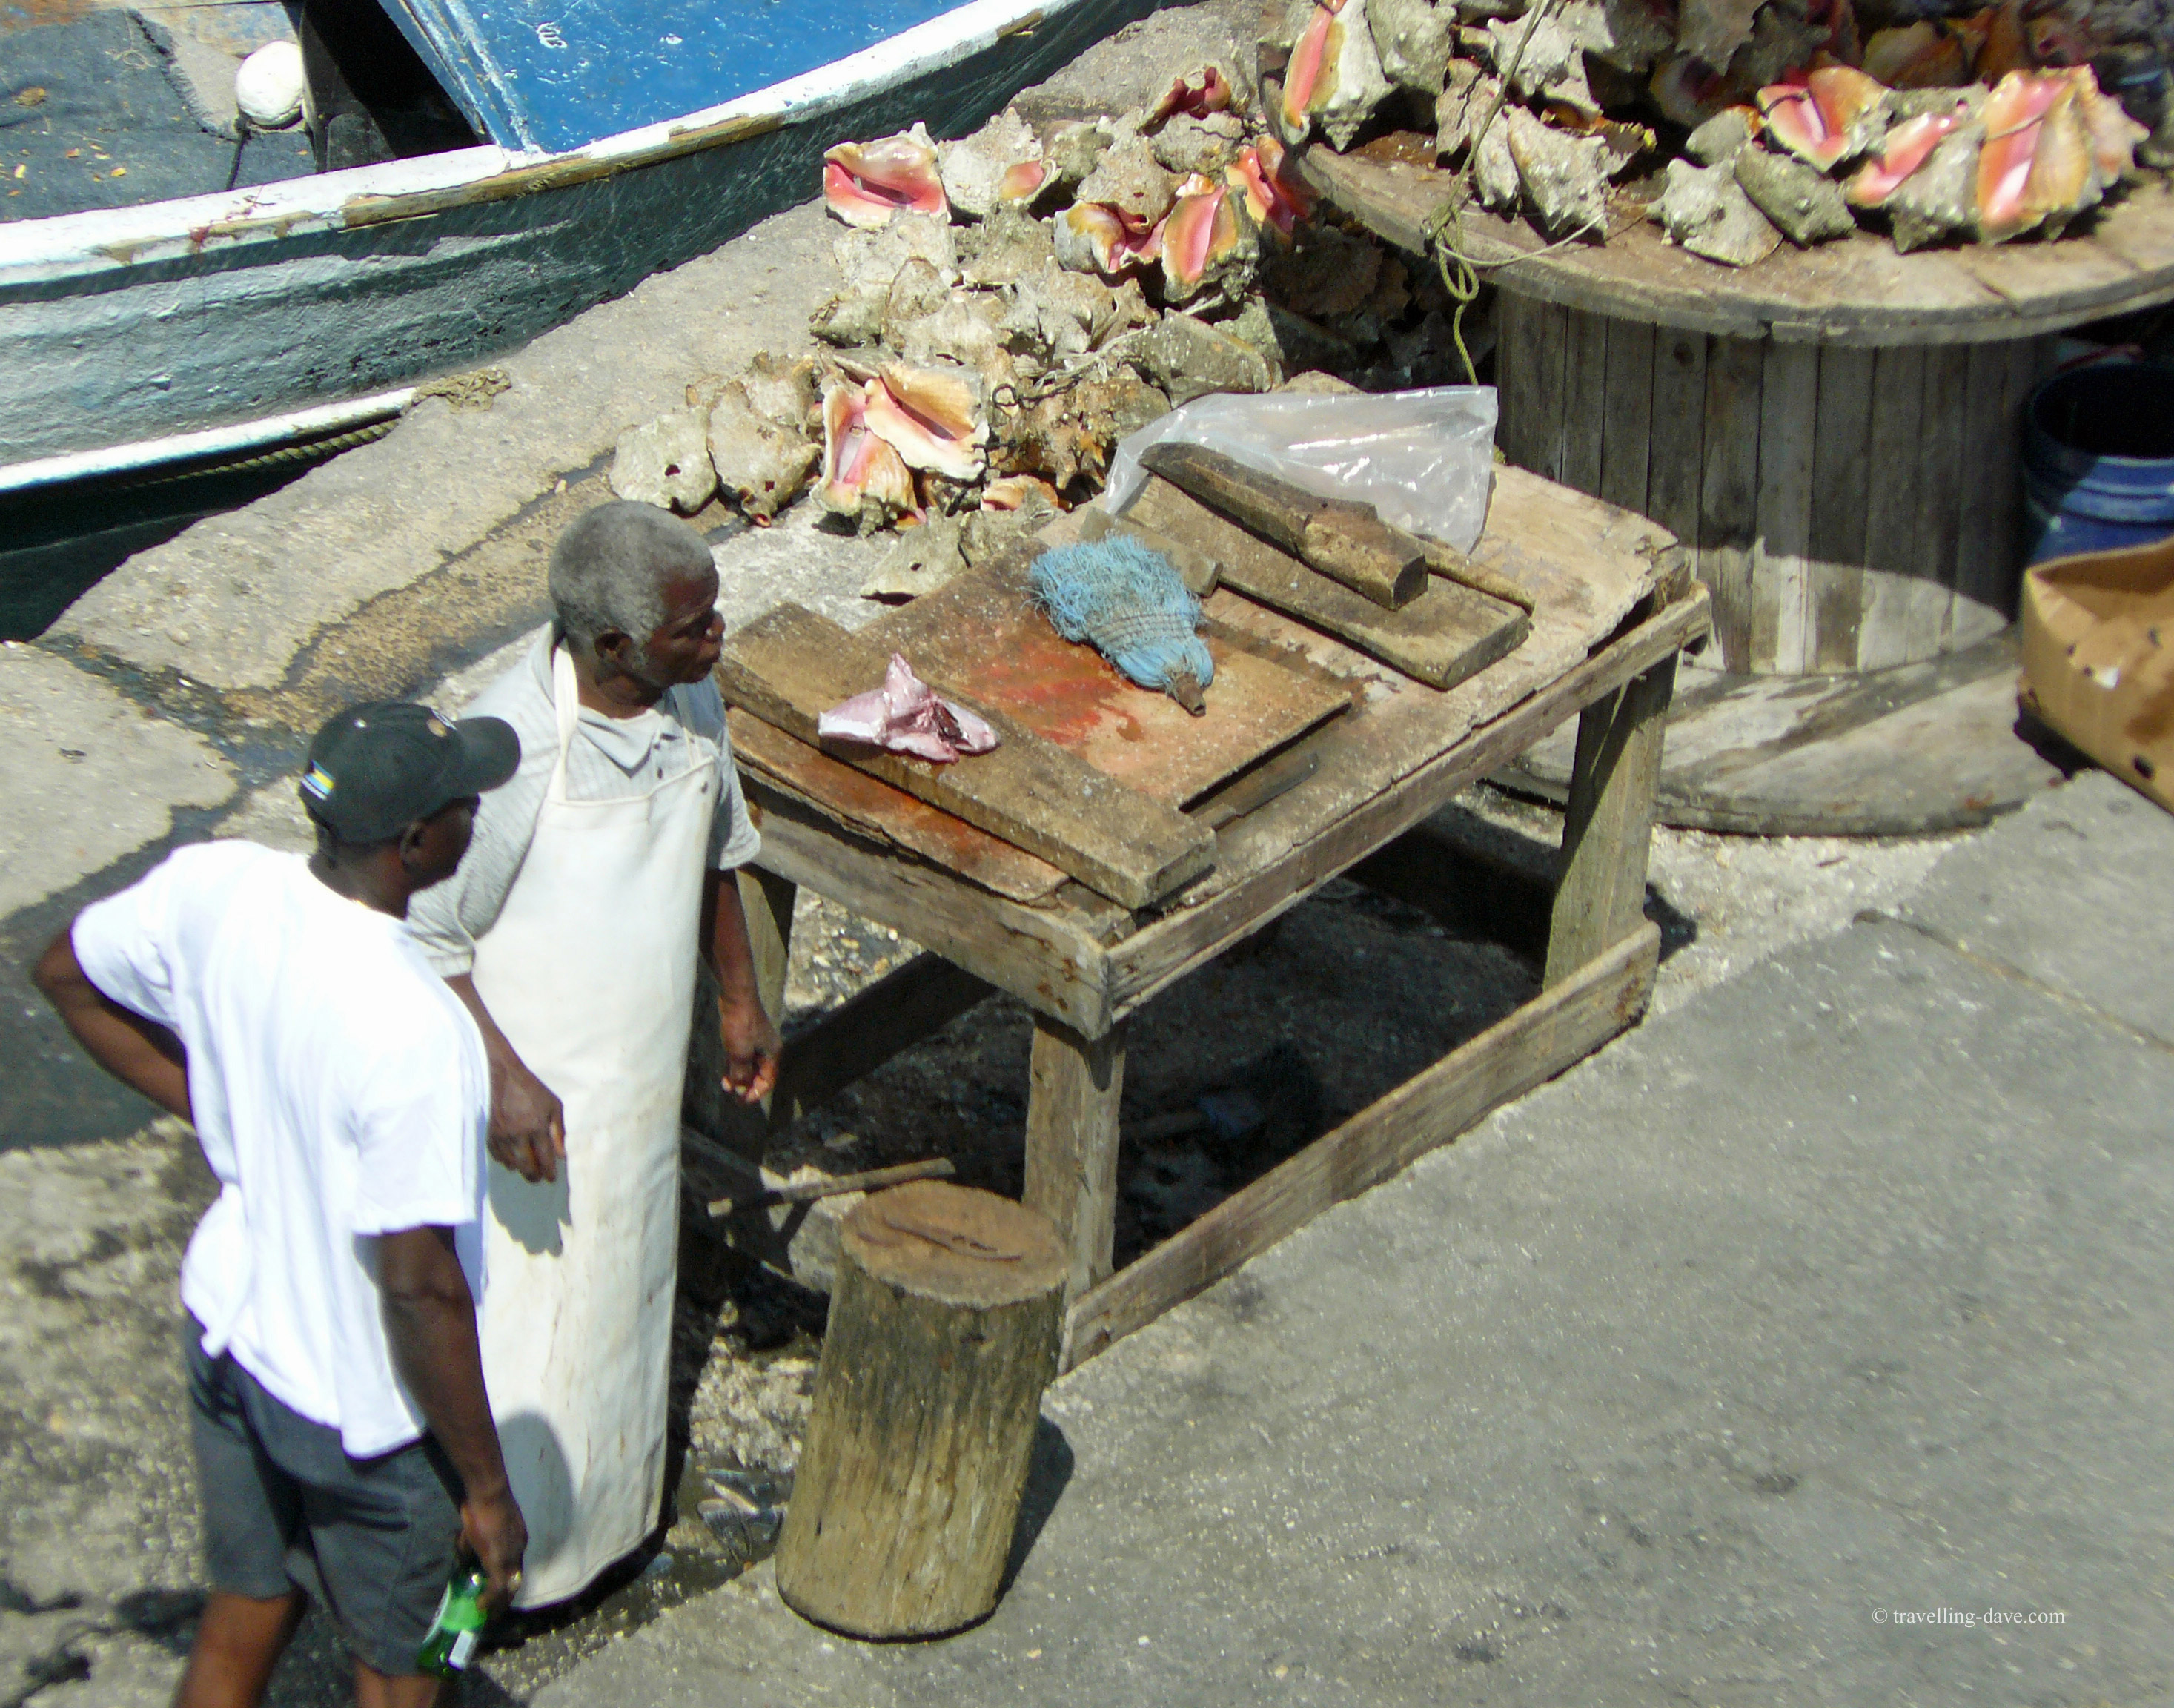 Conch on sale at Potter's Cay in the Bahamas